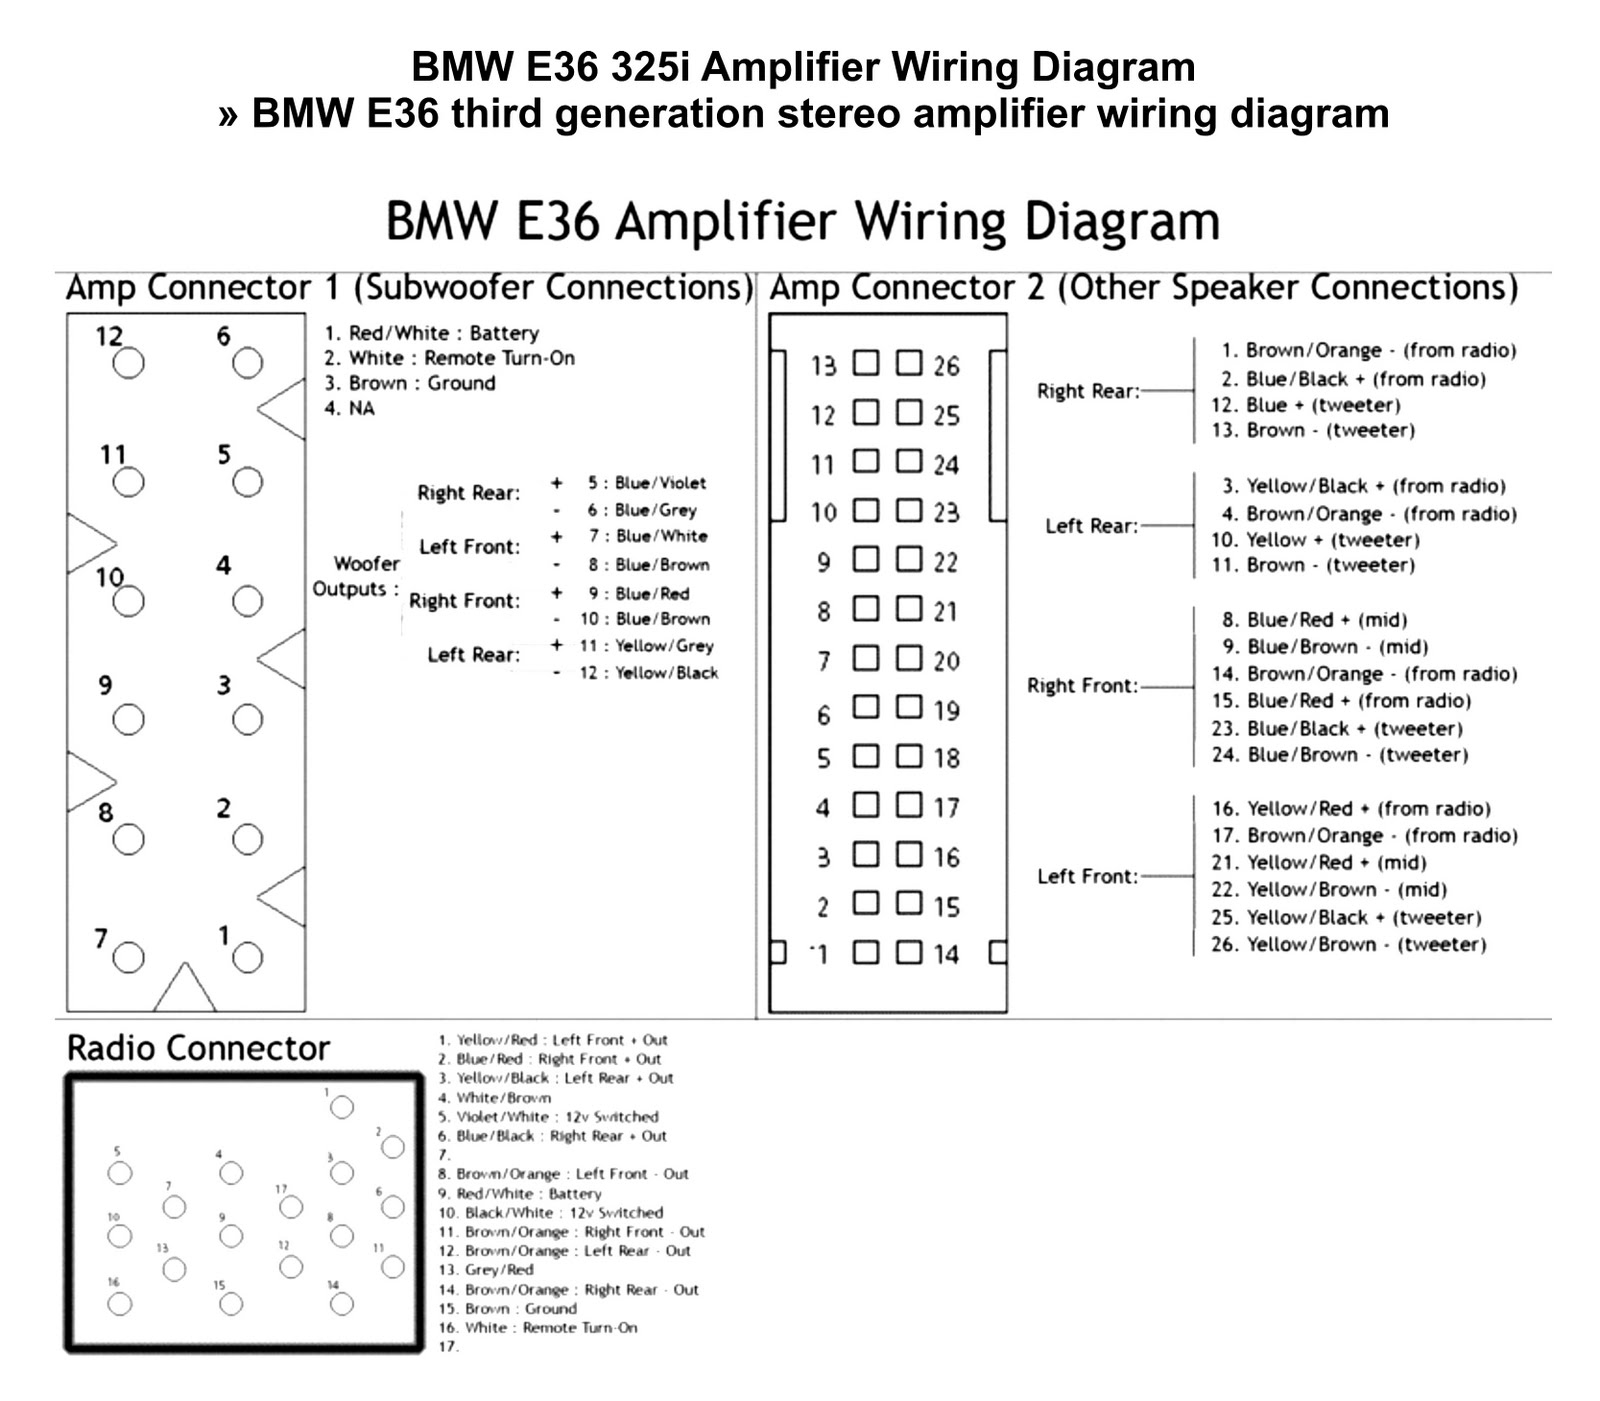 Bmw E36 Wiring Harness Diagram Trusted Diagrams E46 Central Locking Engine Somurich Com Air Intake